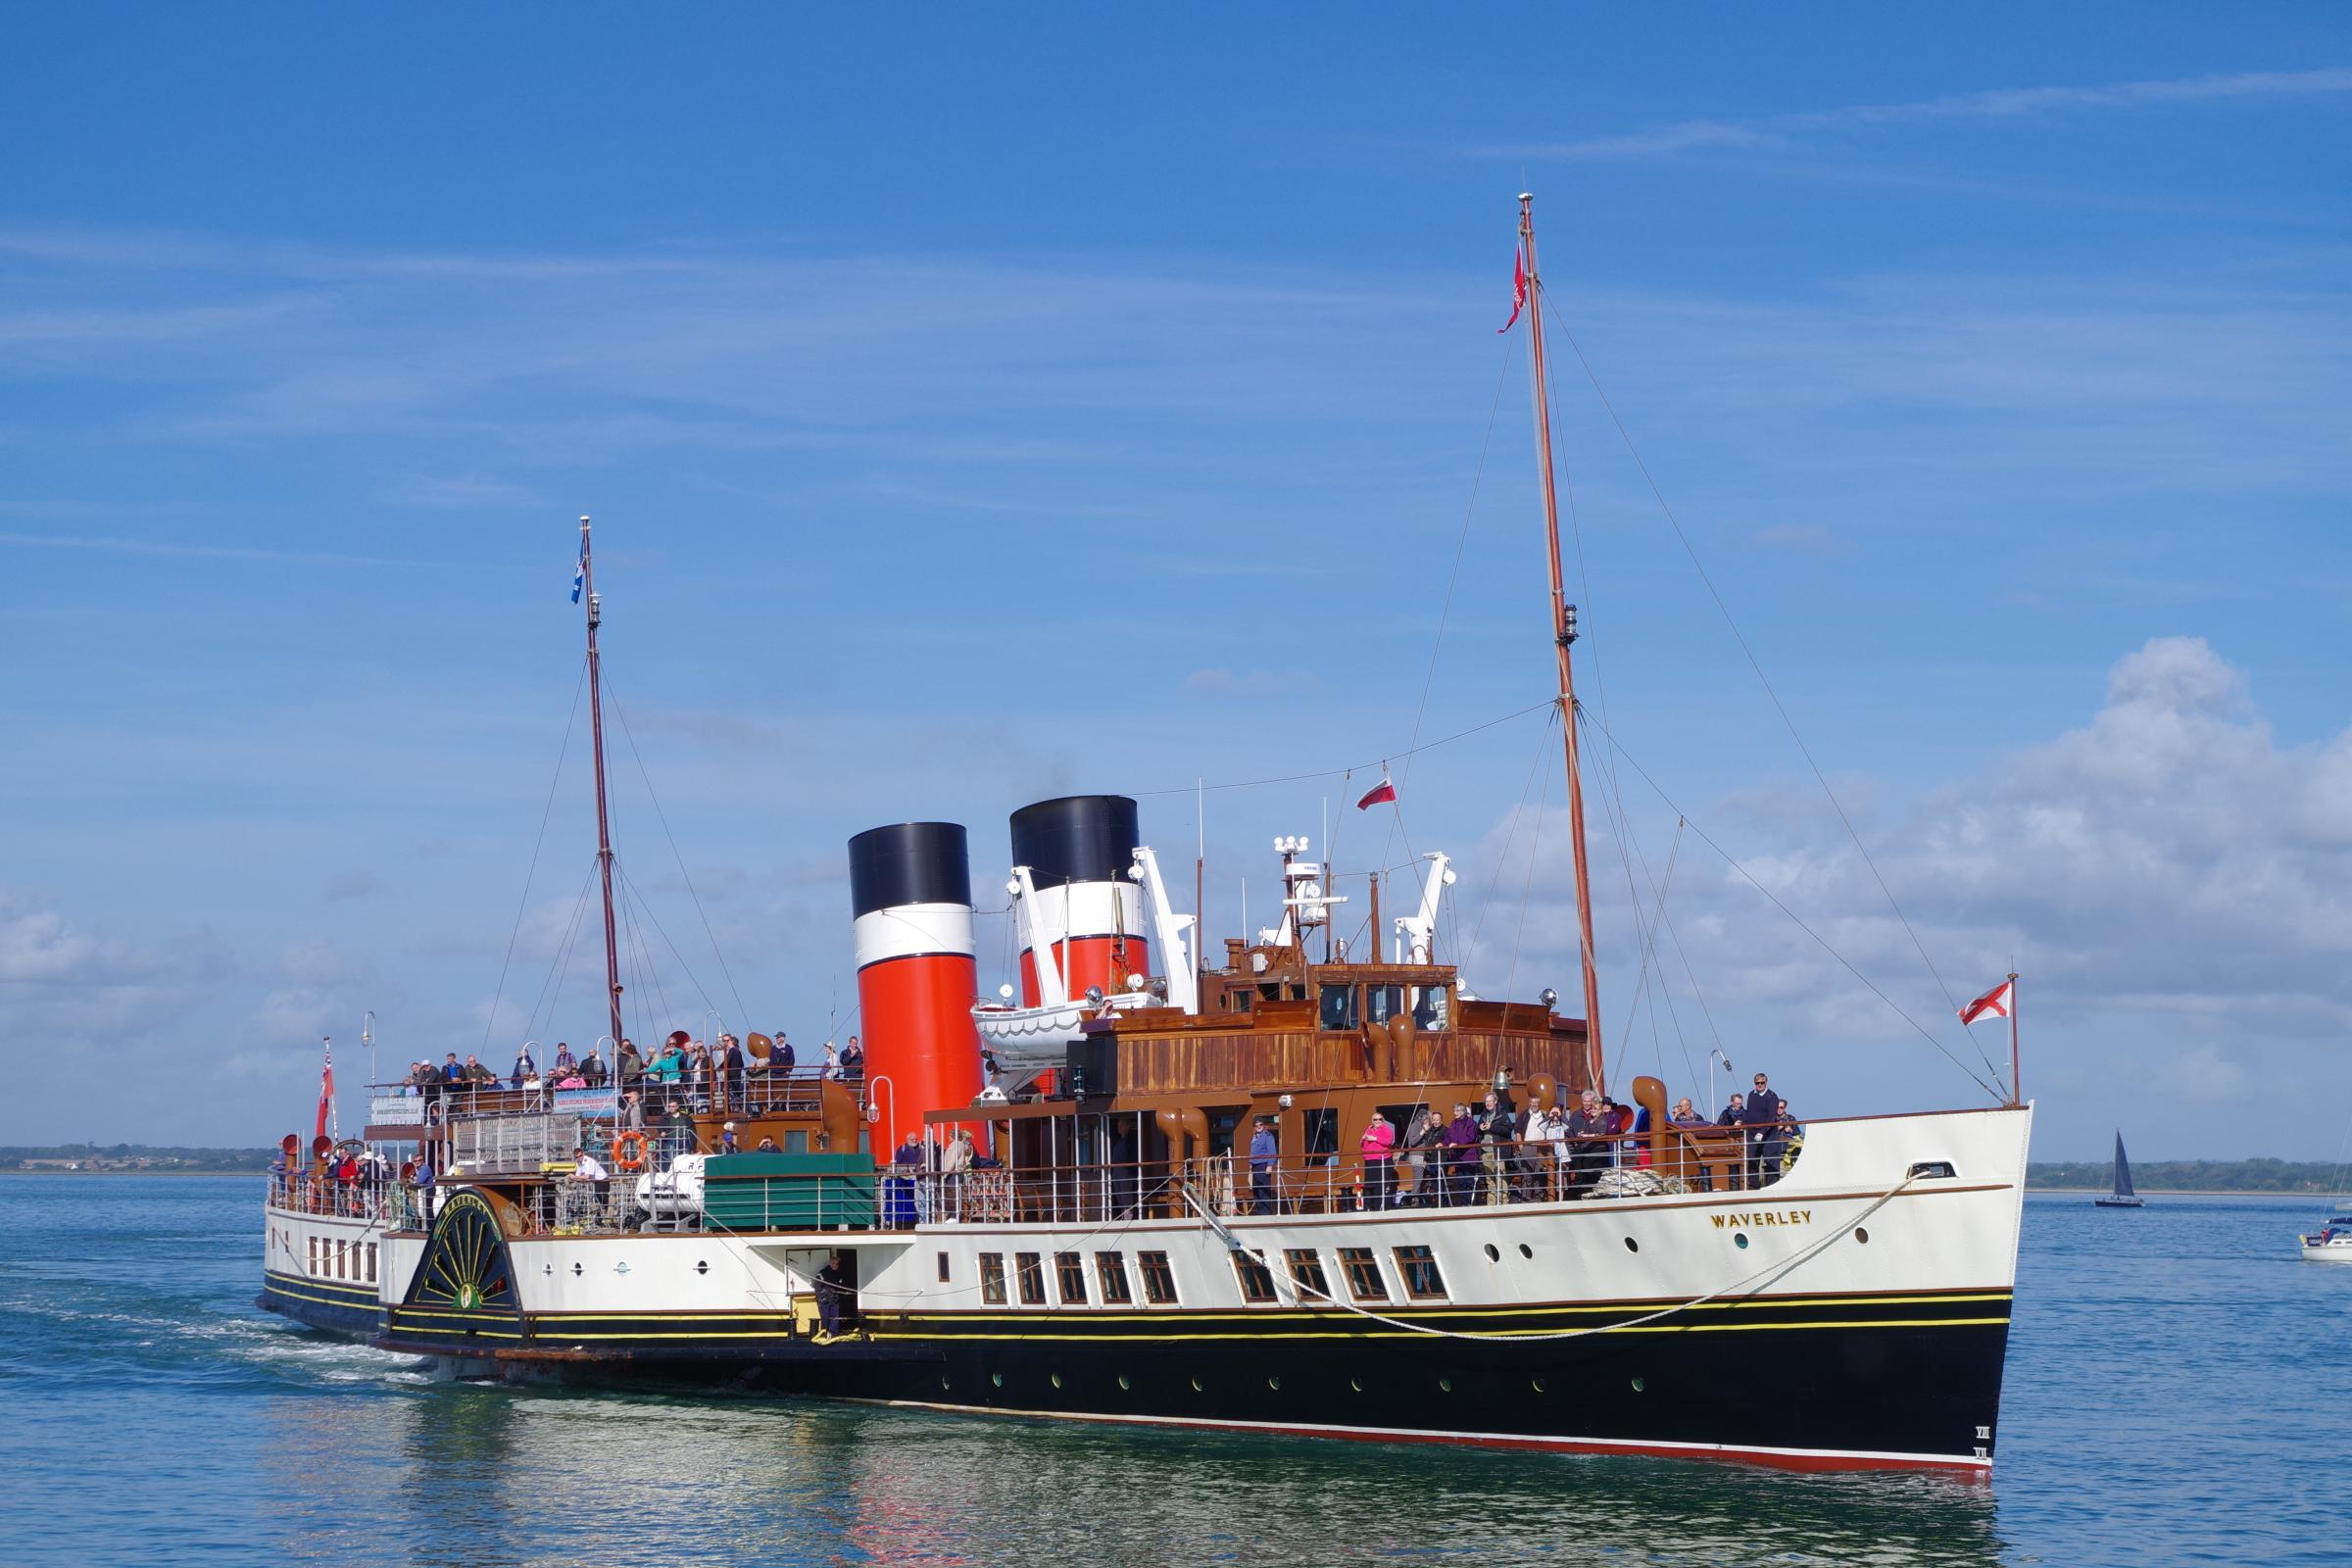 PS Waverley will not call at Helensburgh pier this summer